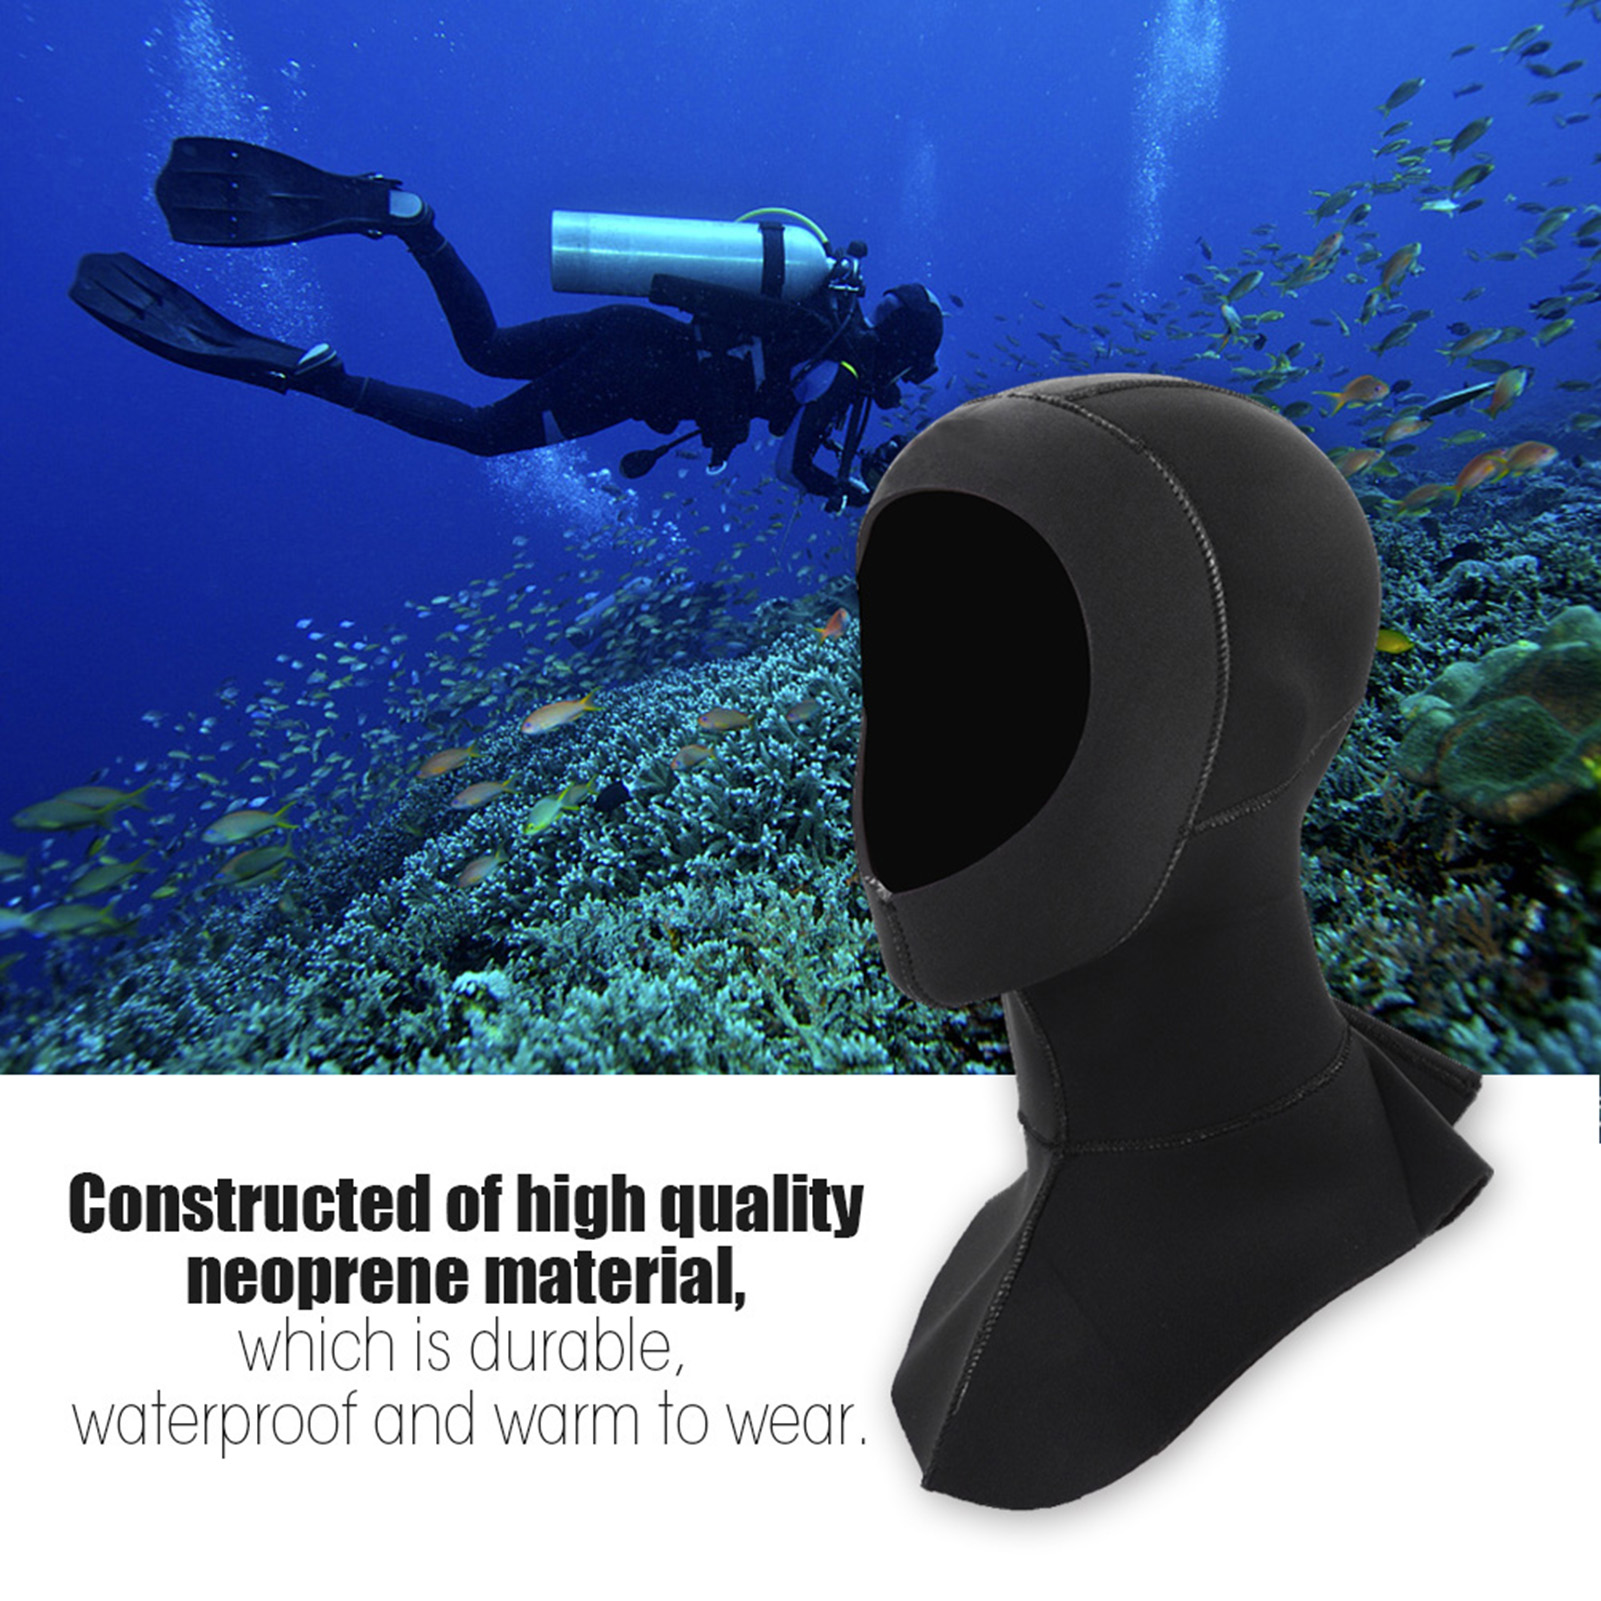 3mm-Neoprene-Scuba-Diving-Cap-Swimming-Warm-keeping-Wetsuit-Snorkeling-Hat-Hood thumbnail 15